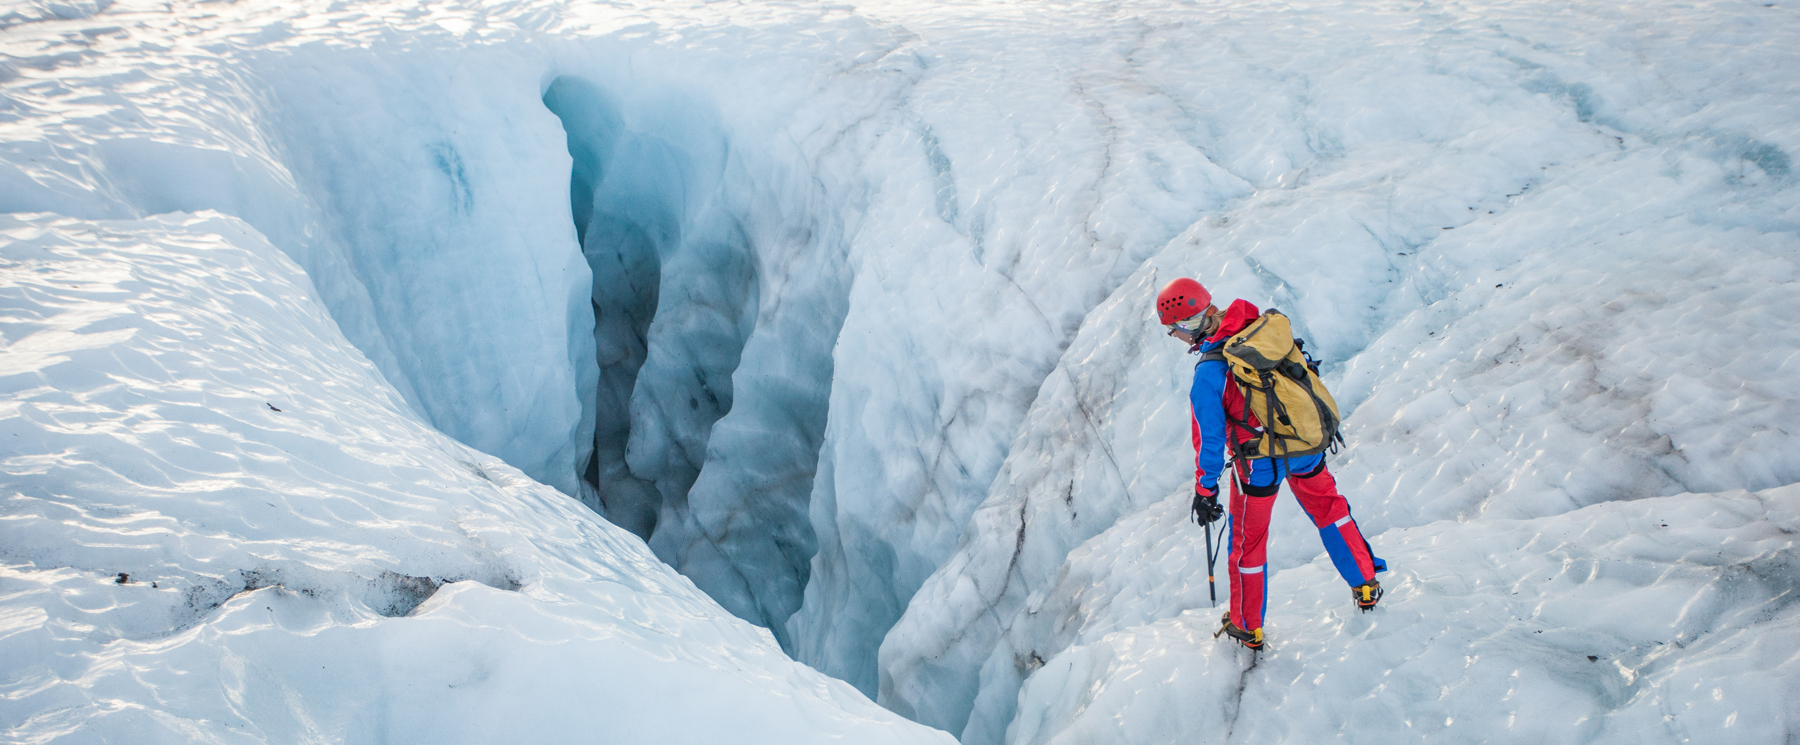 ICE SAR, Icelandic Association for Search and Rescue